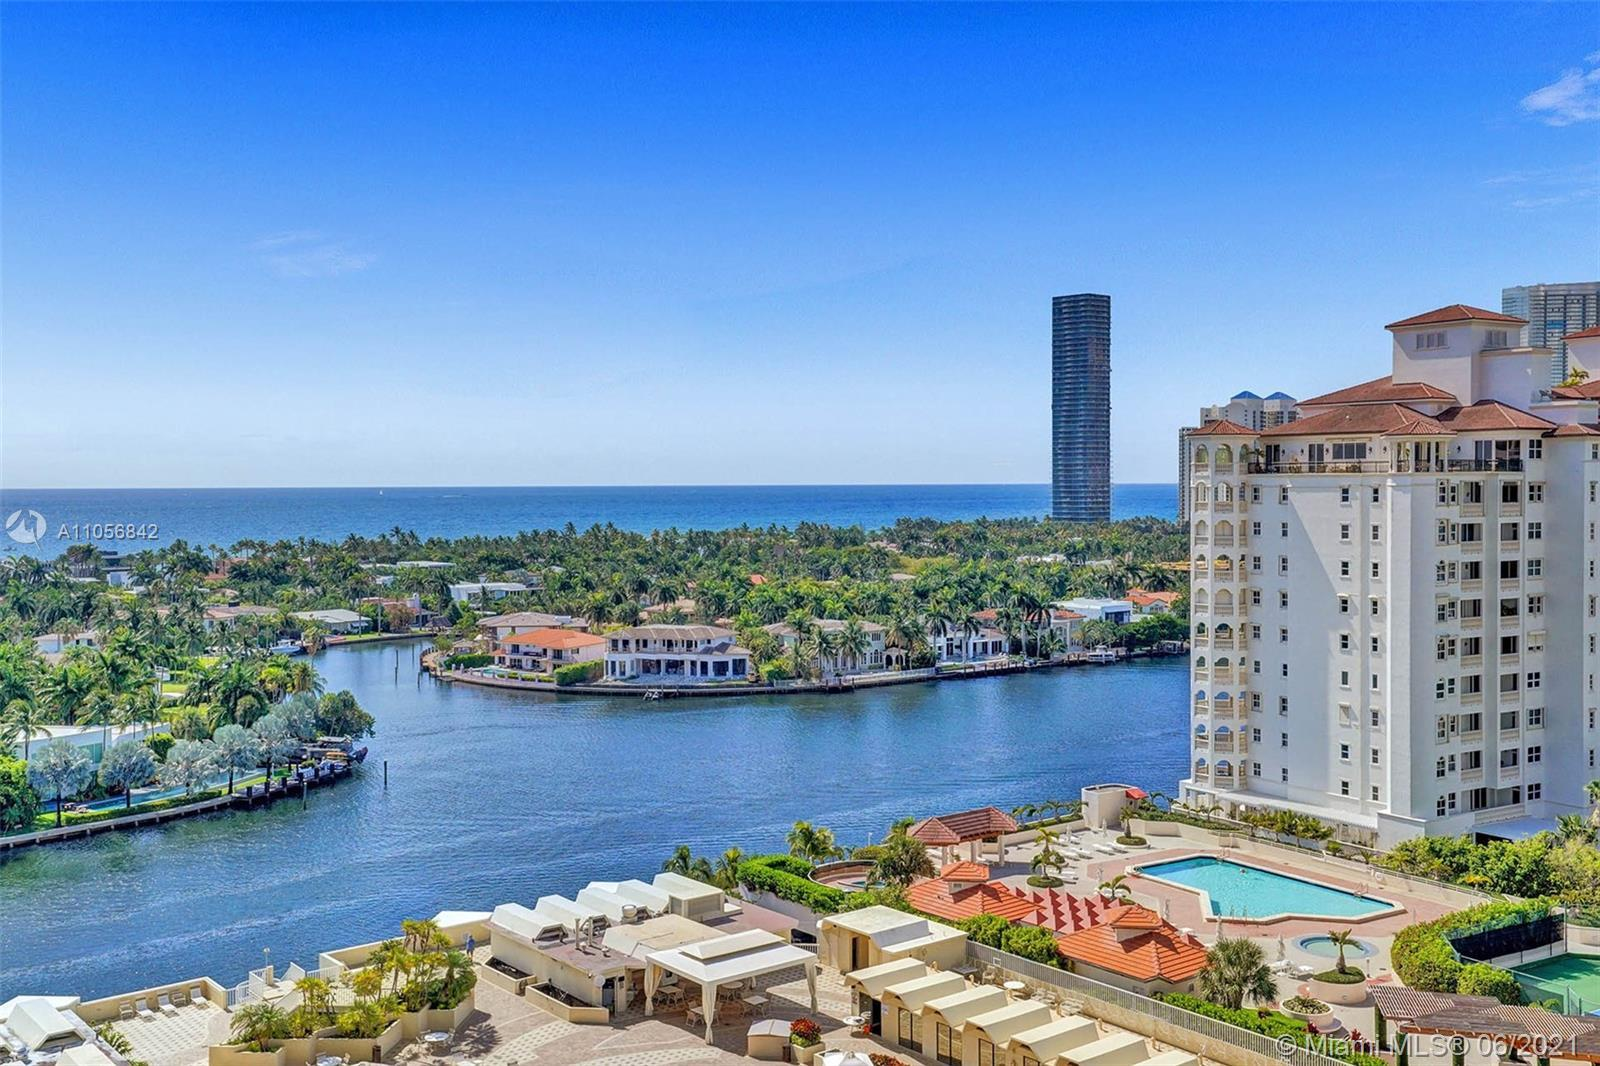 Highly sought, rare 3, 3 1/2 baths one-of-a-kind gem! Amazing views of Ocean + Intracoastal. Impecca